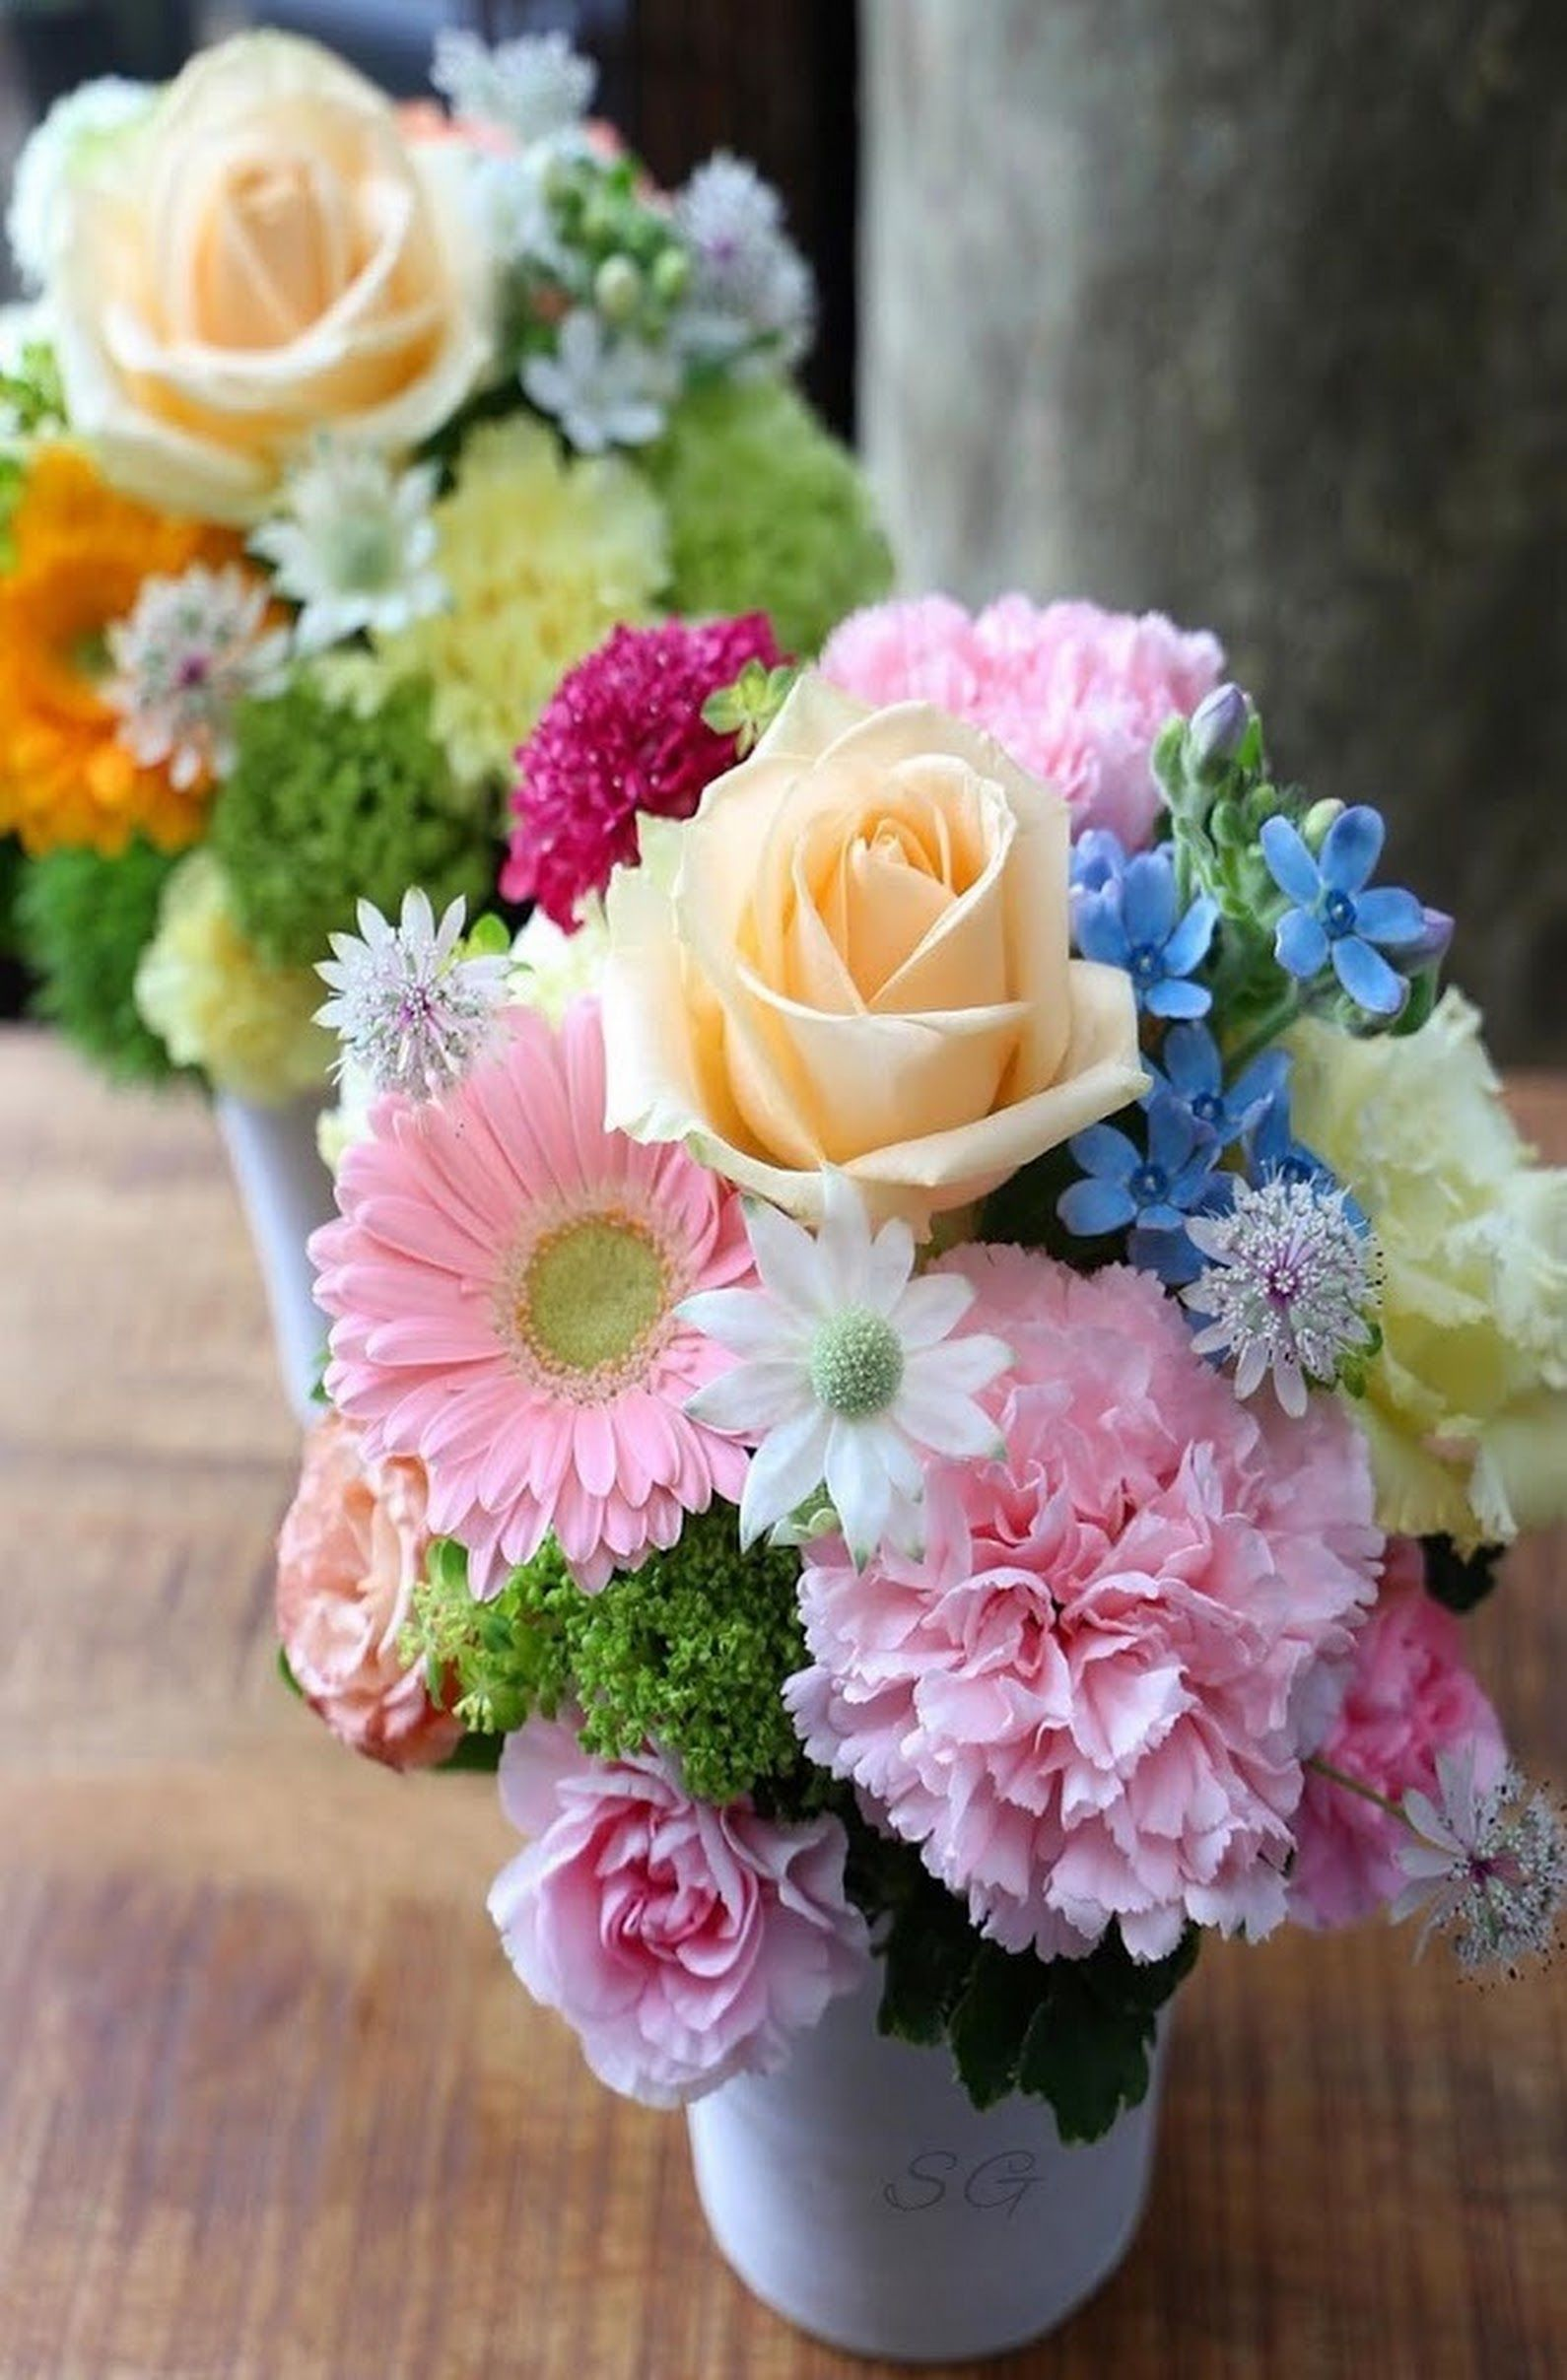 Pin By Rajesh Pandey On Hindi Quotes Pinterest Flowers Bouquet